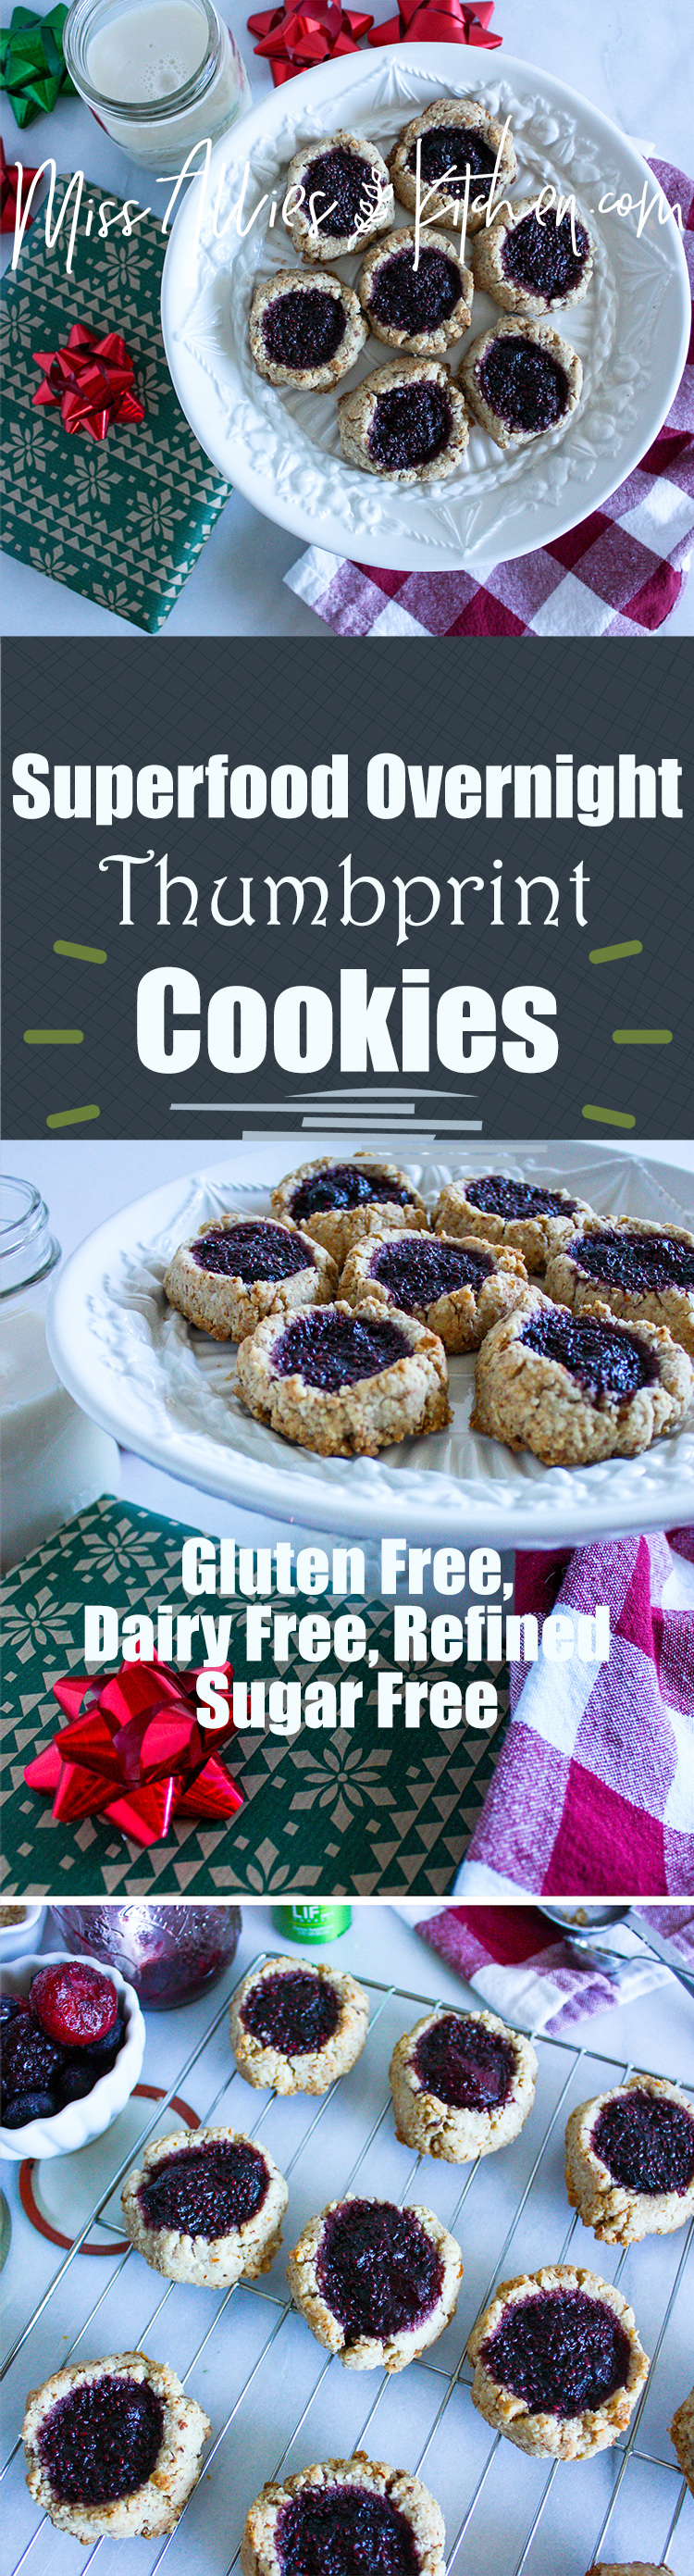 Gluten Free Superfood Overnight Thumbprint Cookies! A tender & flavorful classic cookie with a healthy twist! - Miss Allie's Kitchen